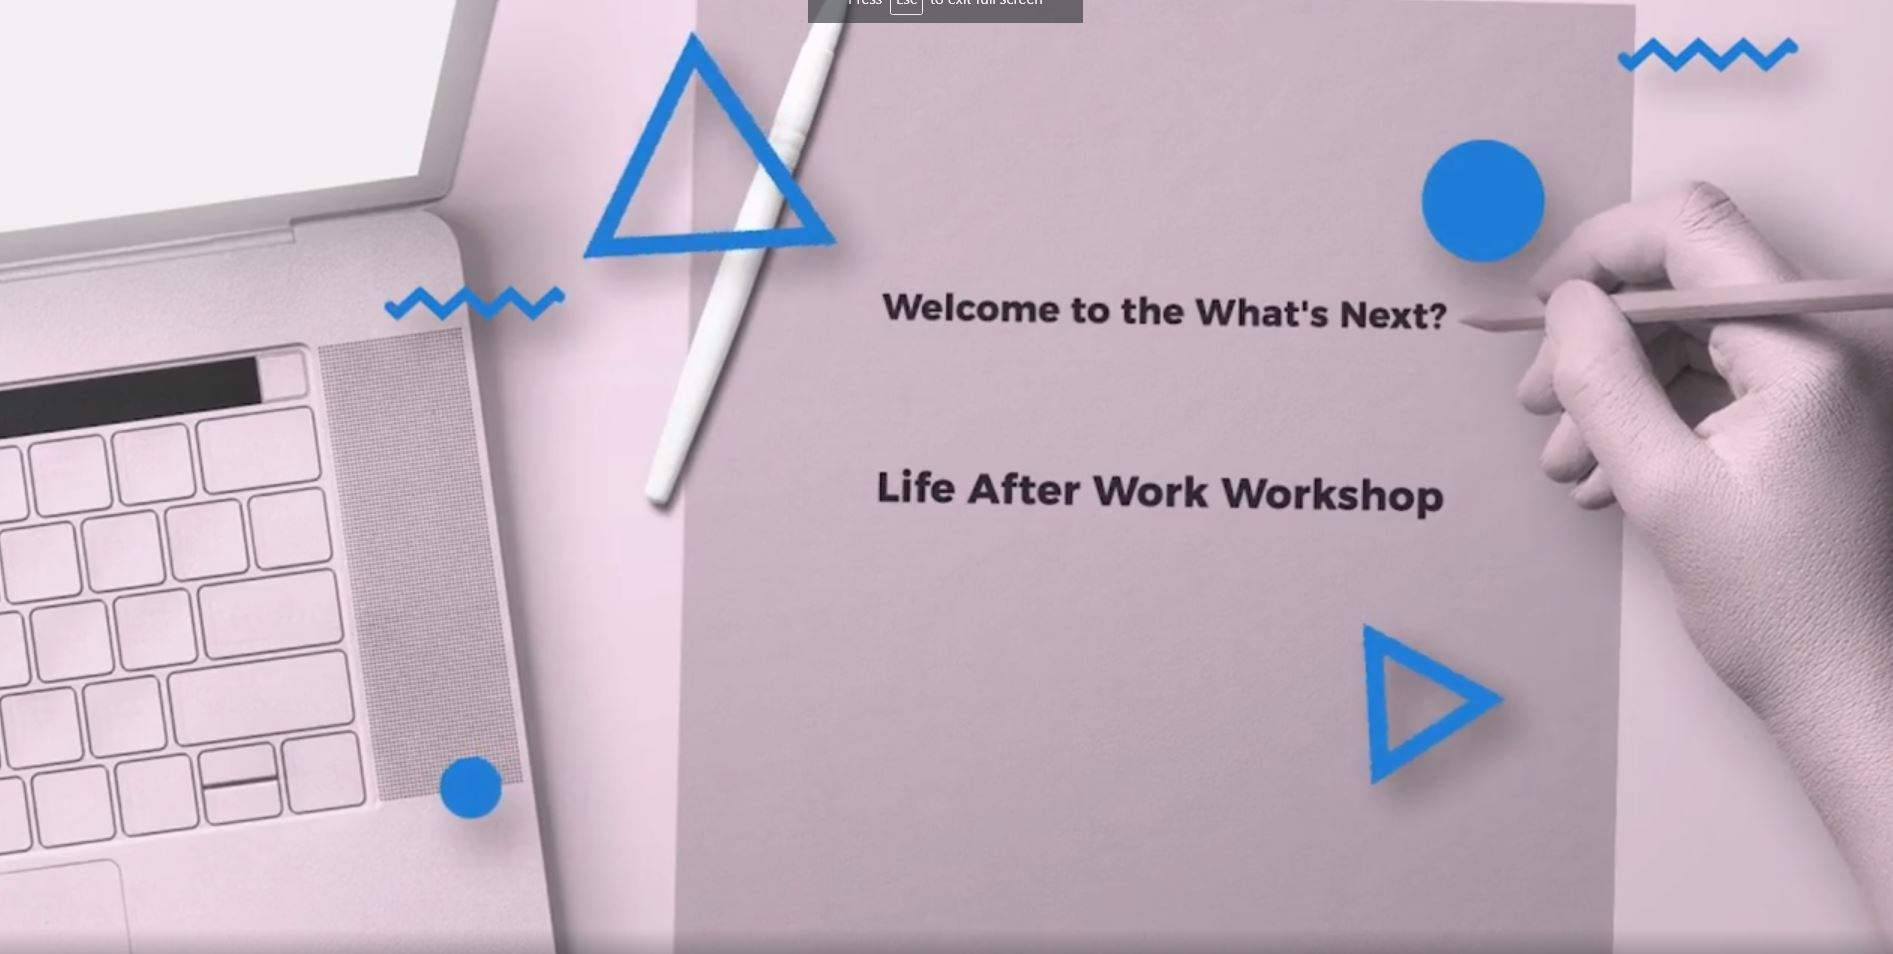 MoneyNav Academy Worksop: What's Next? Life After Work Workshop